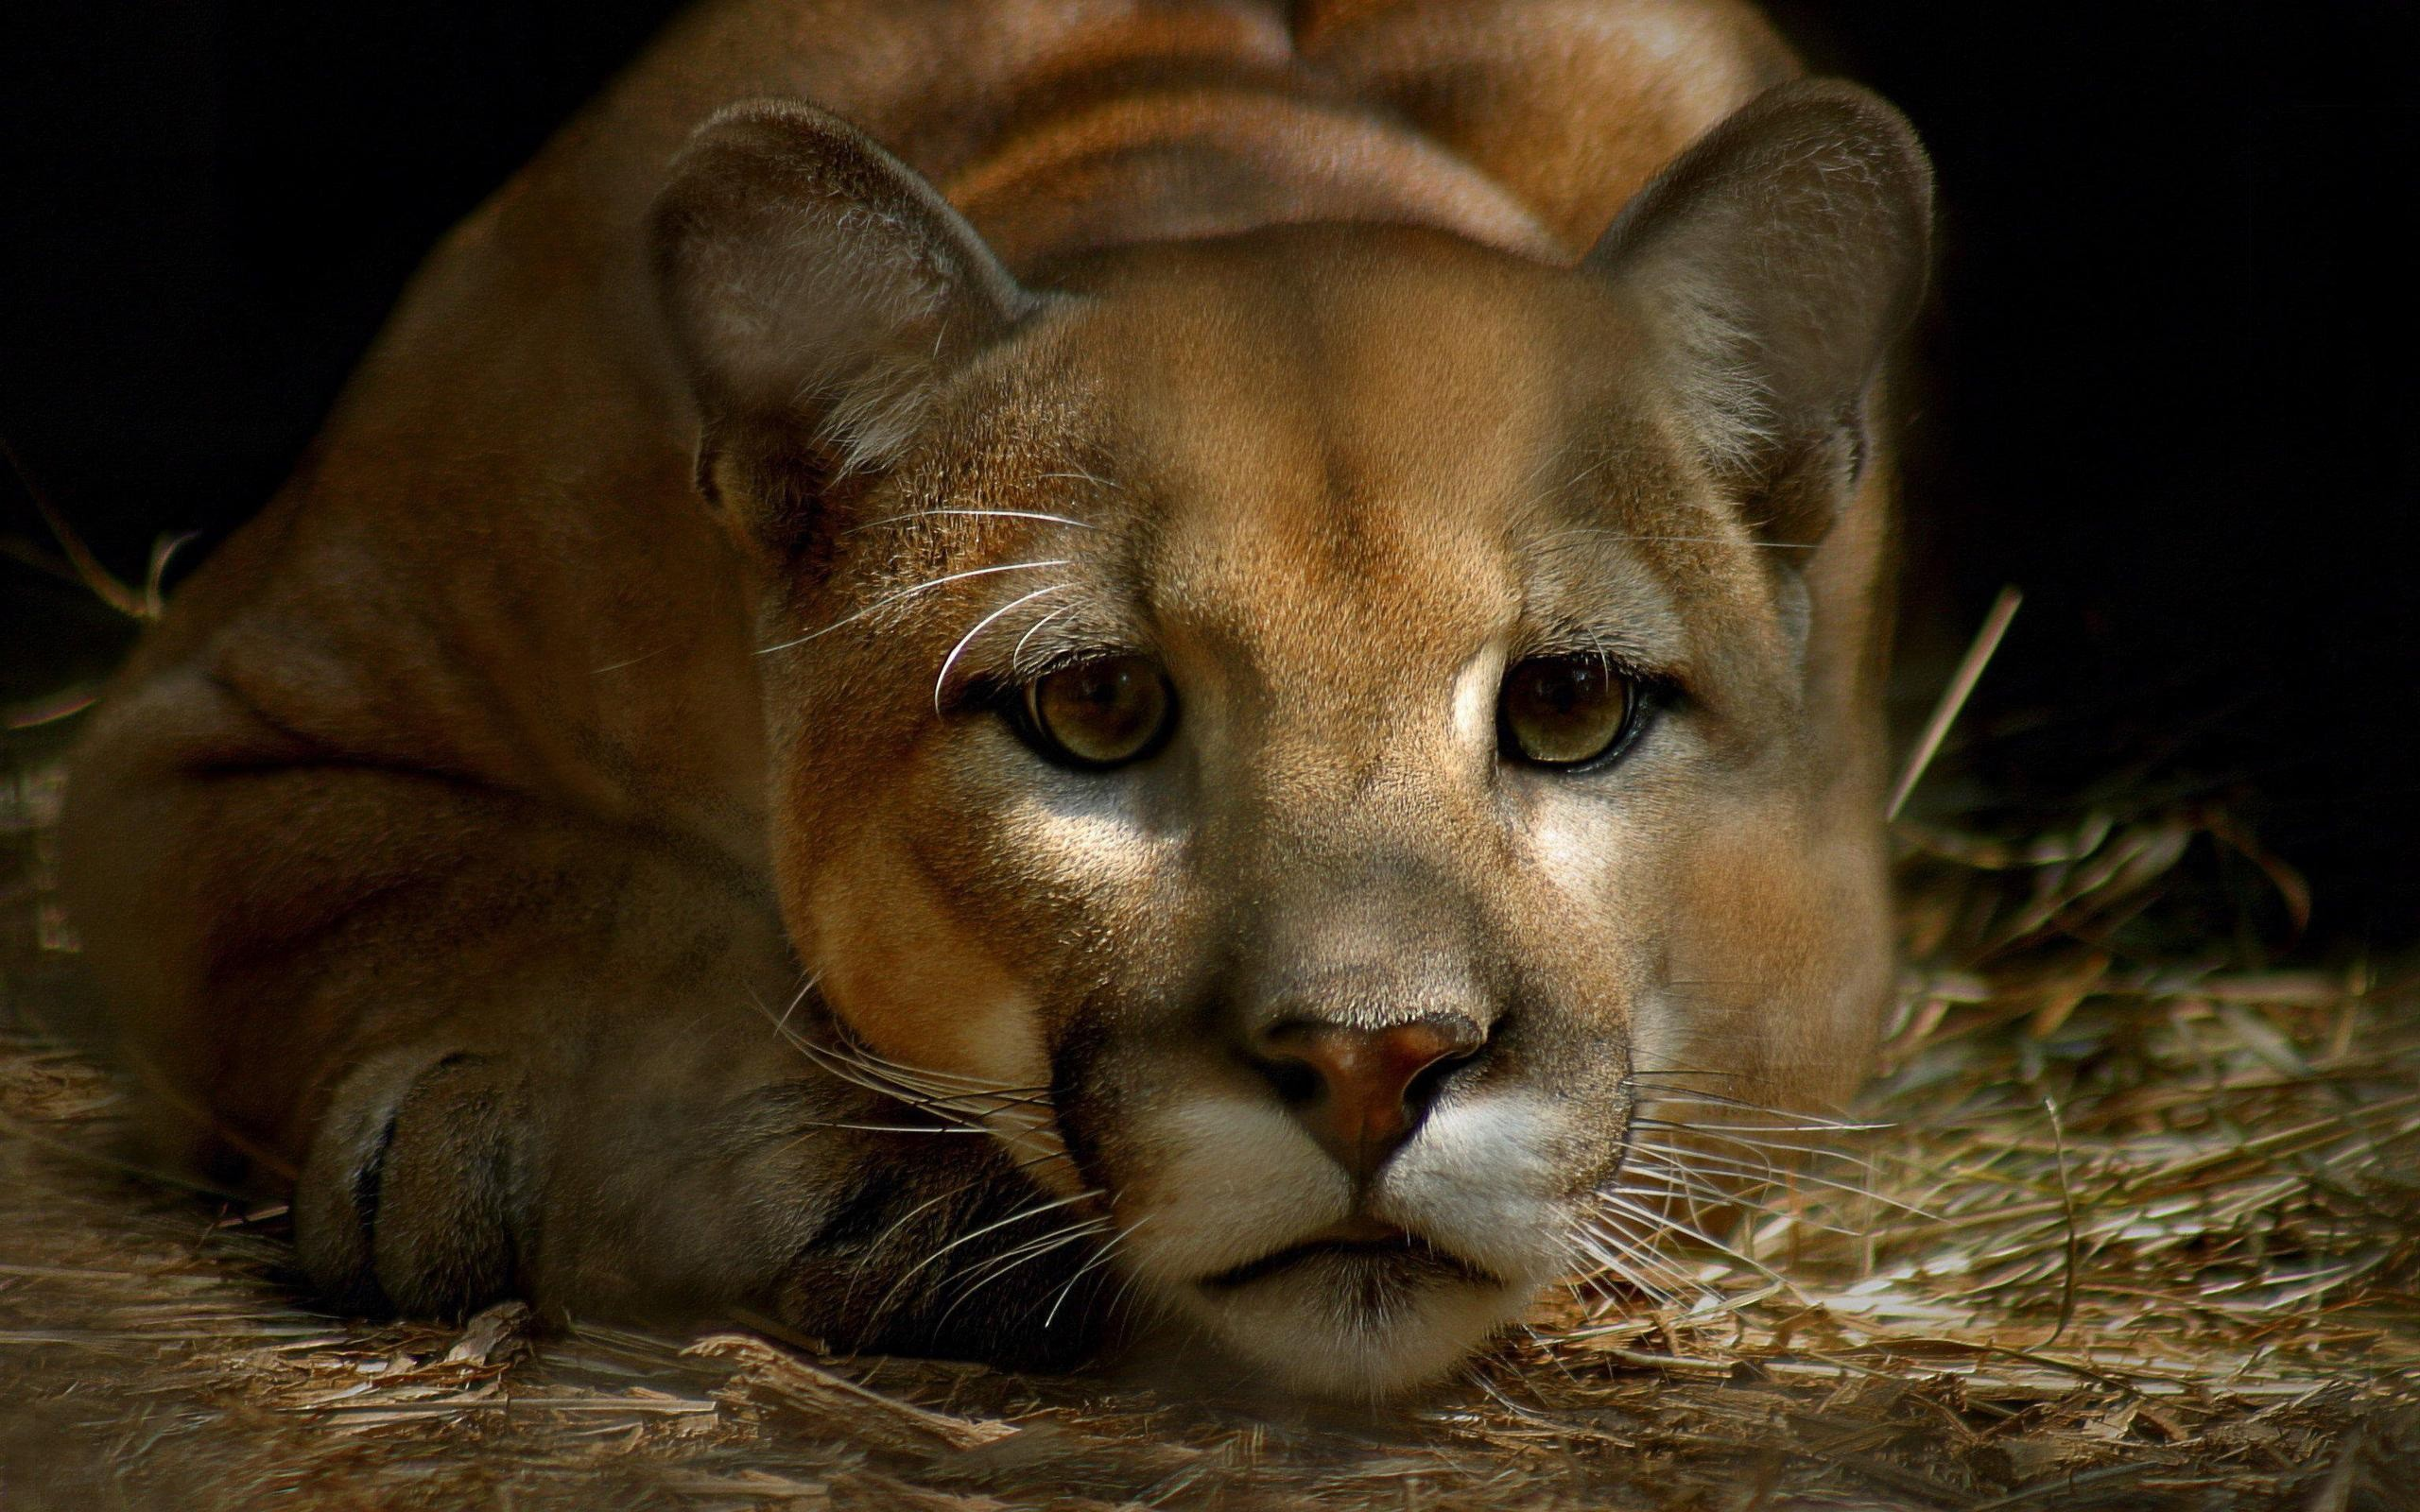 75 Hd Animals Ipad Backgrounds: Pumas Wallpaper (62+ Images